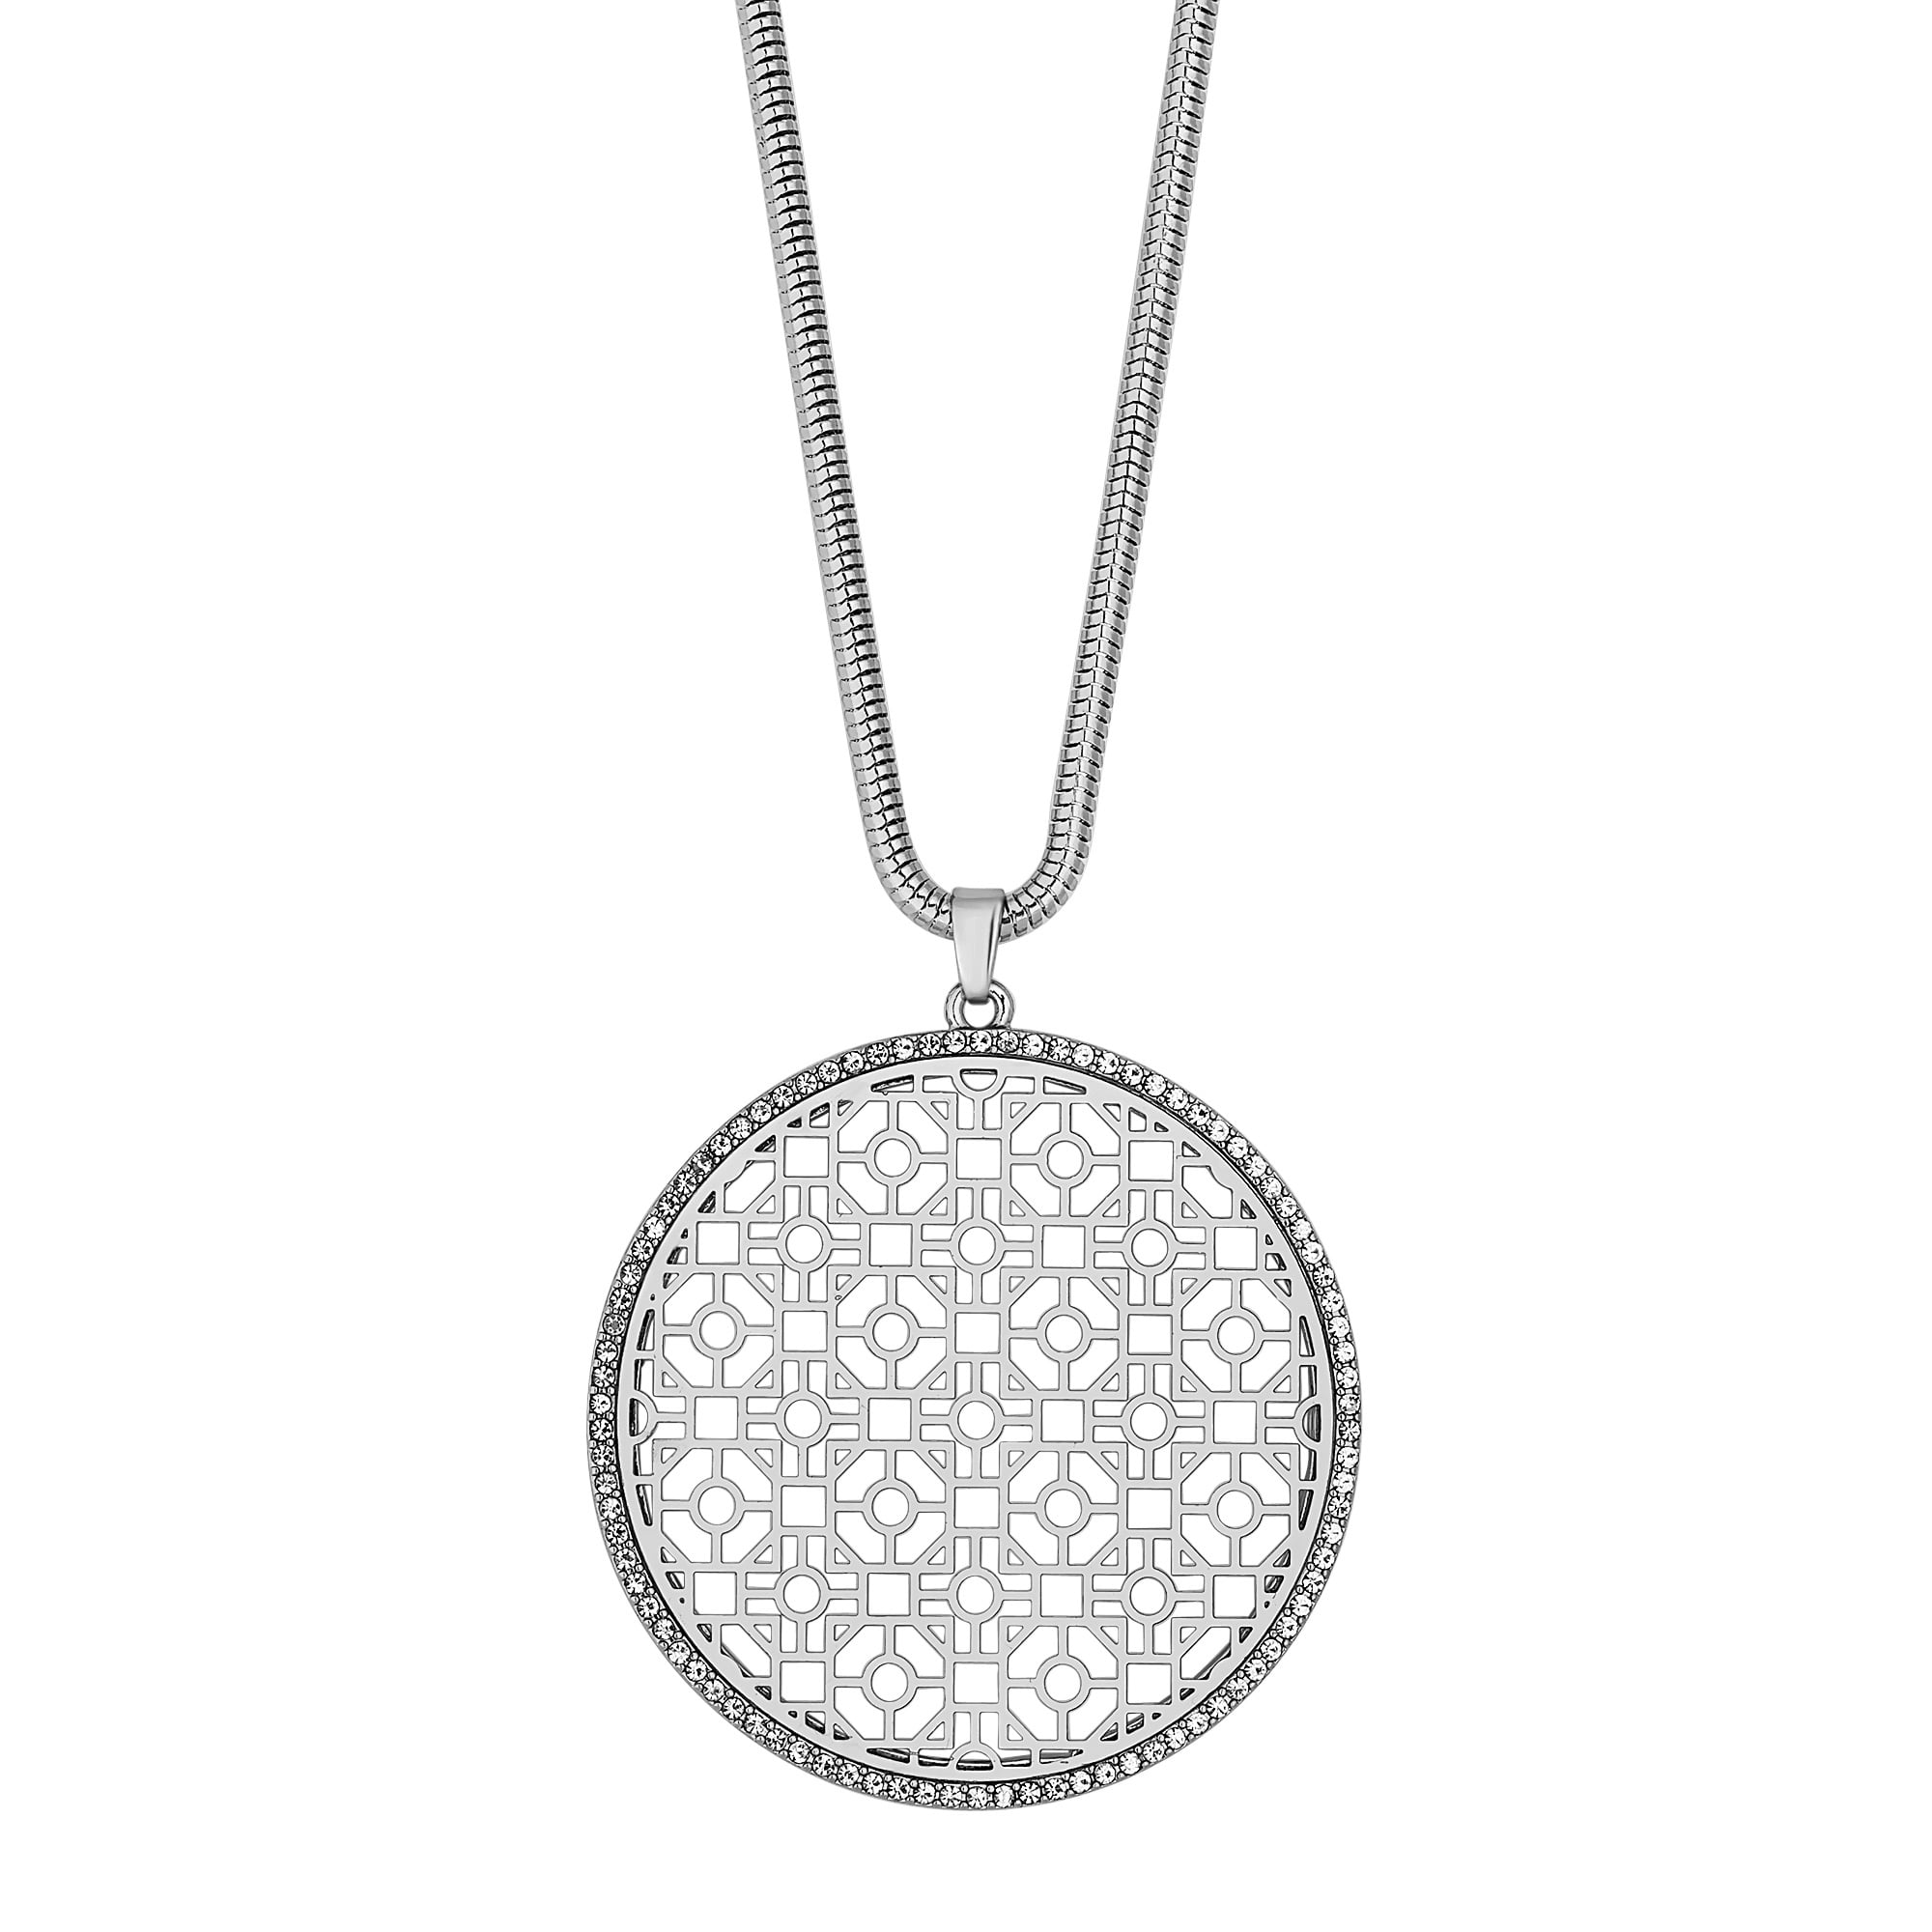 hand free on overstock silver jewelry today sterling of eye product fatima pendant box necklace large shipping hamsa chain watches inch